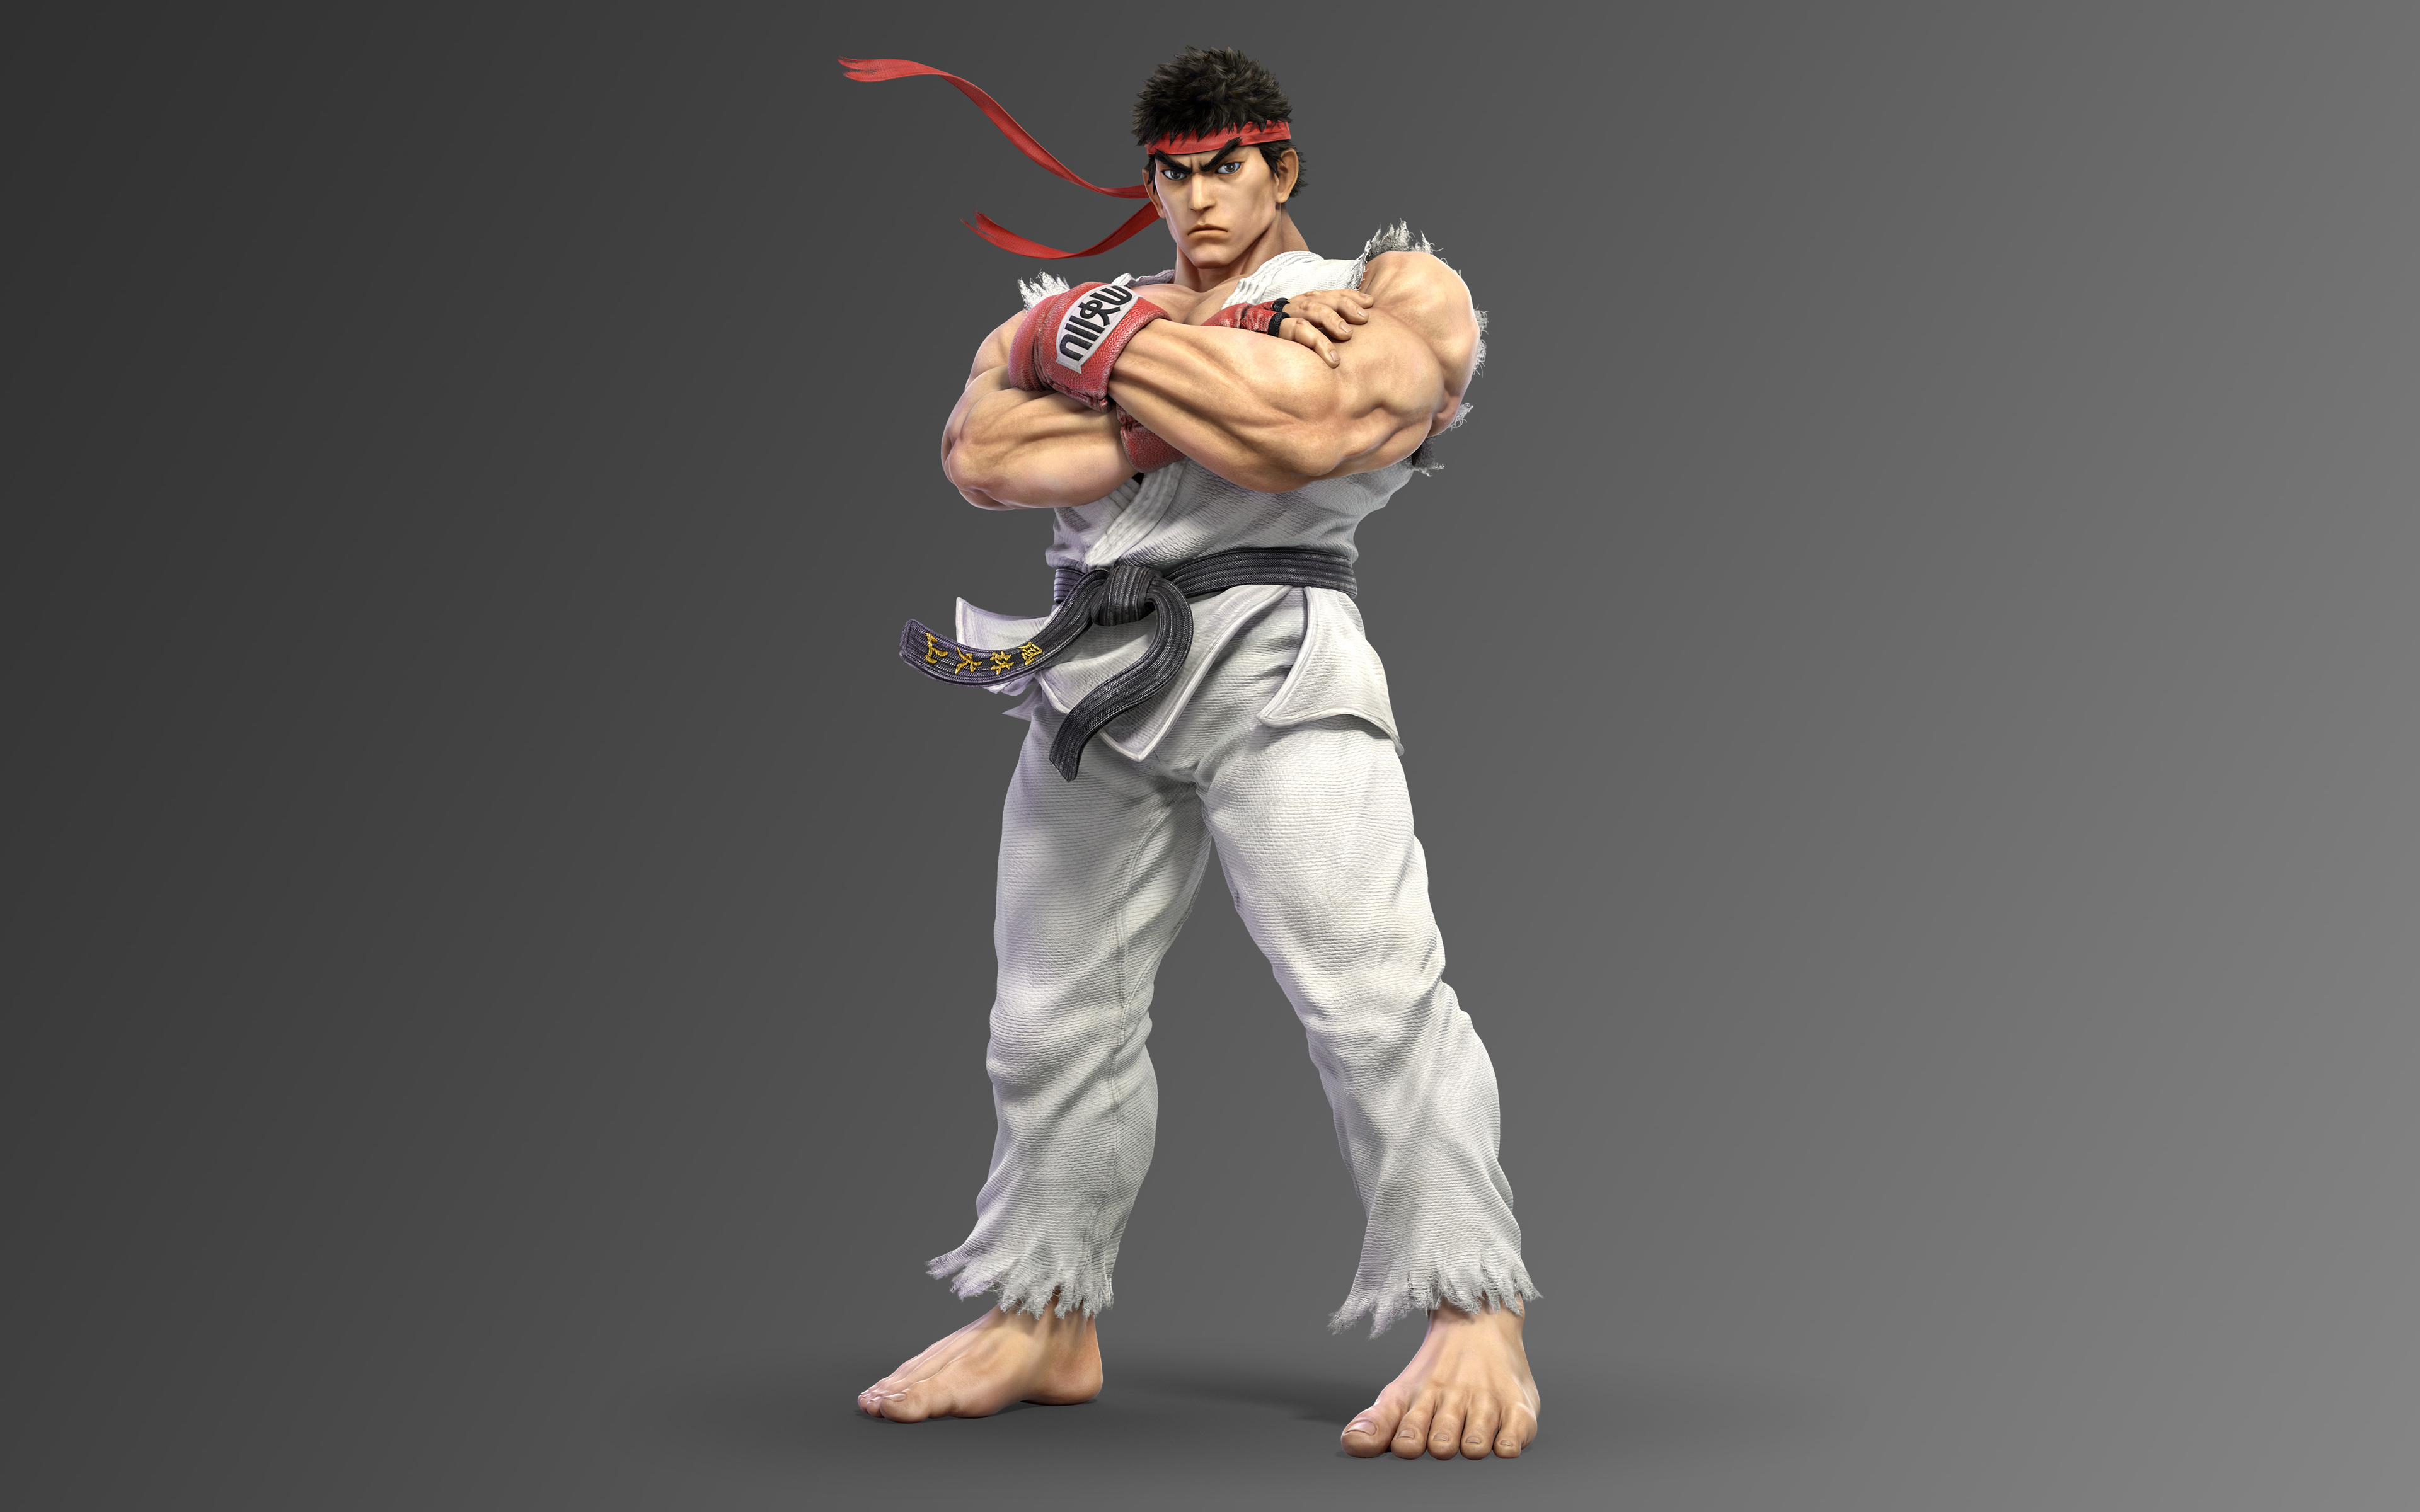 ryu-super-smash-bros-ultimate-5k-yc.jpg